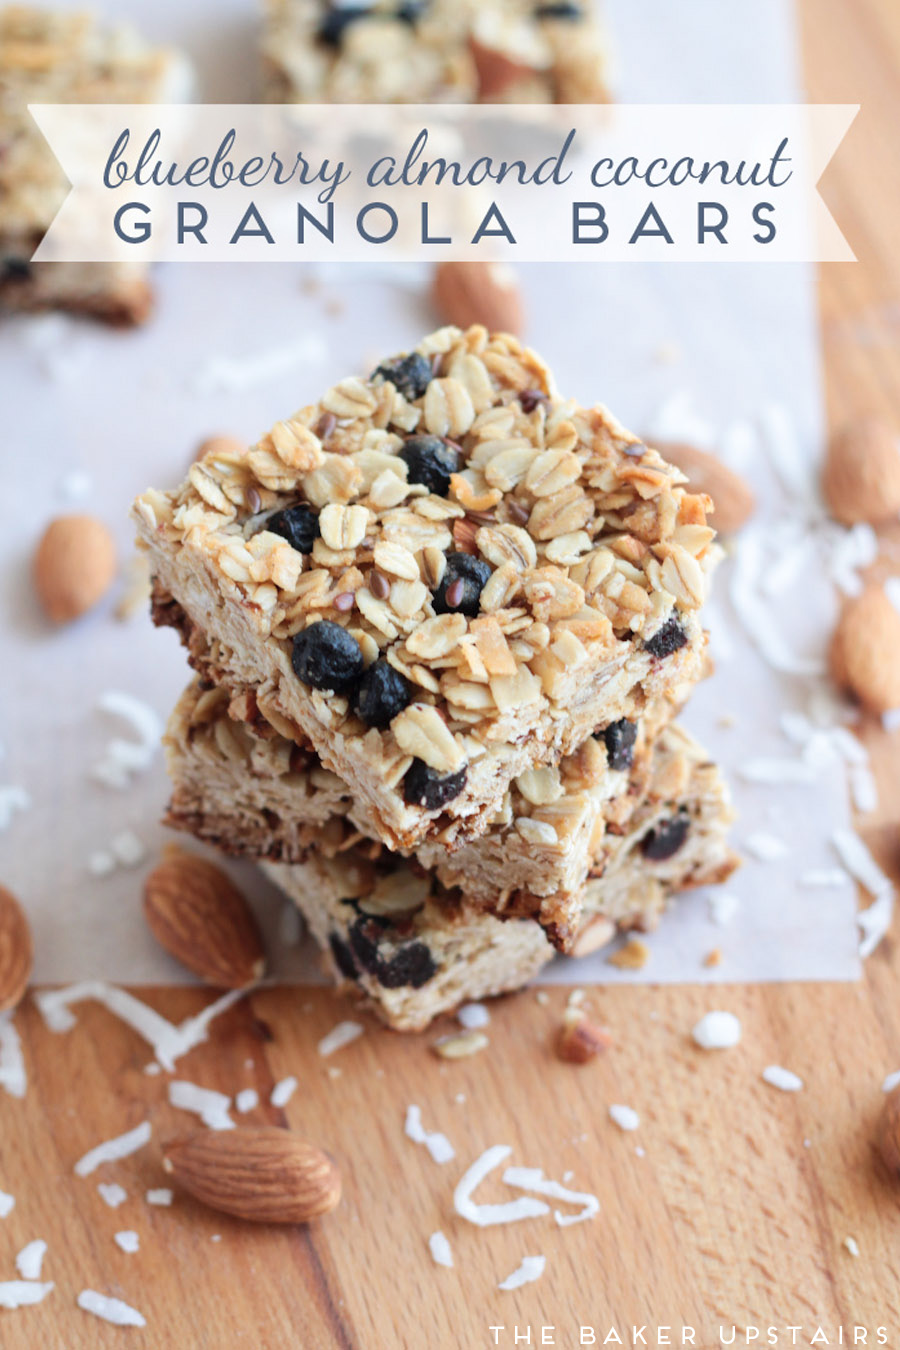 Blueberry almond coconut granola bars - healthy, delicious, and easy to make too!